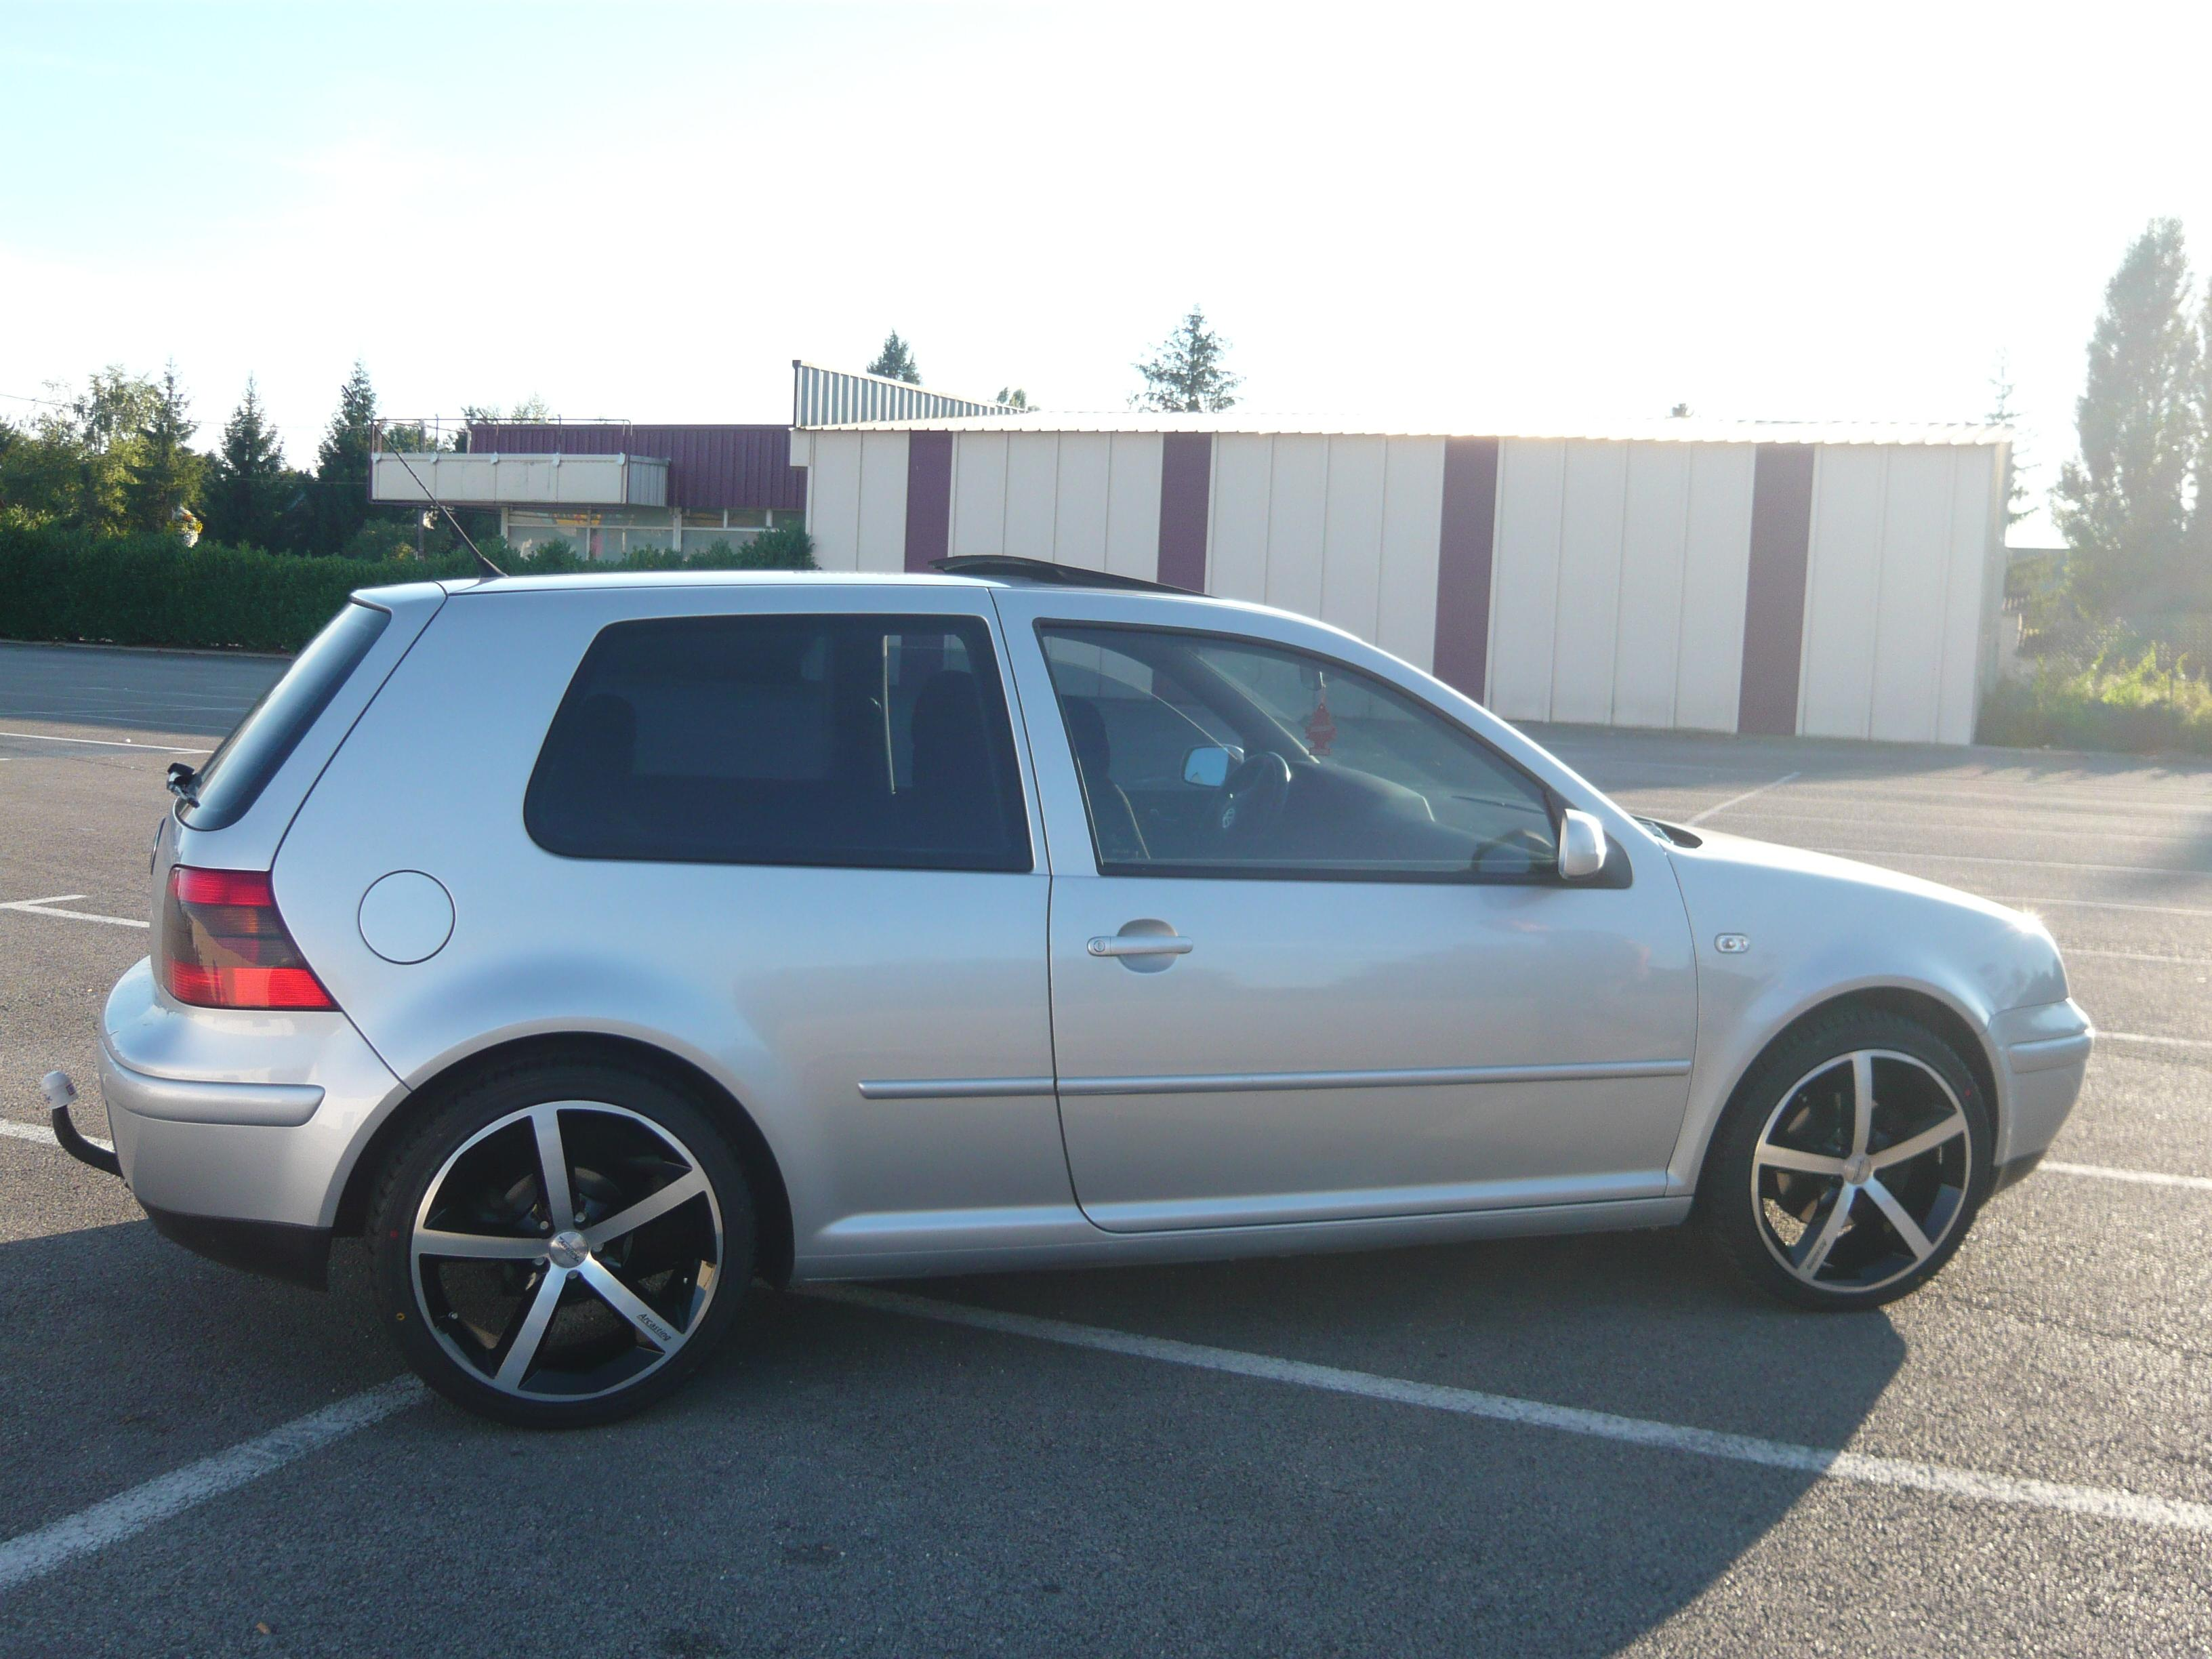 golf iv tdi gti 150 d 39 angel039 garage des golf iv tdi 150 forum volkswagen golf iv. Black Bedroom Furniture Sets. Home Design Ideas